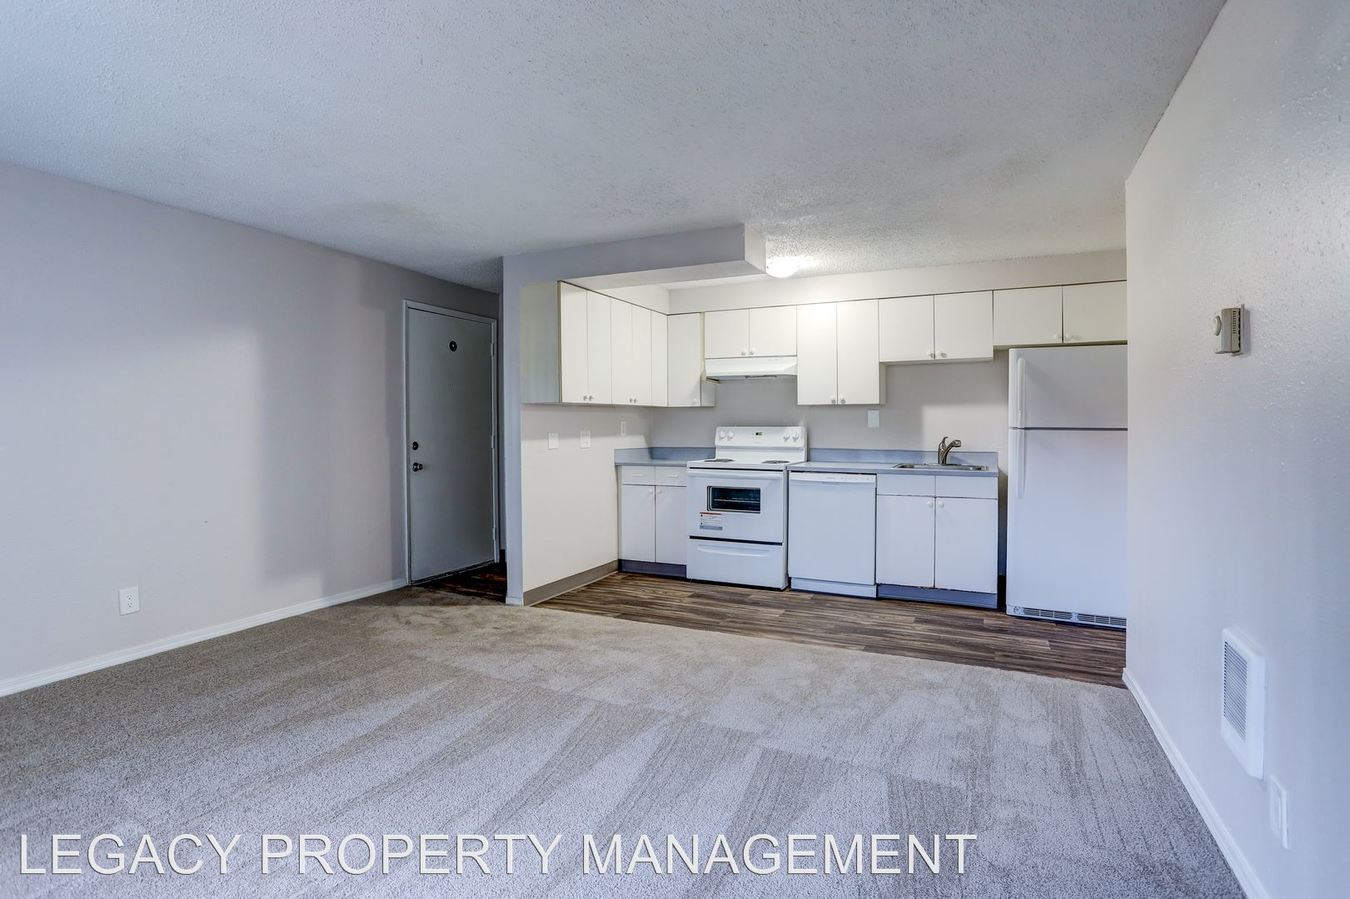 2 Bedrooms 1 Bathroom Apartment for rent at 8630 Sw Barbur Blvd in Portland, OR